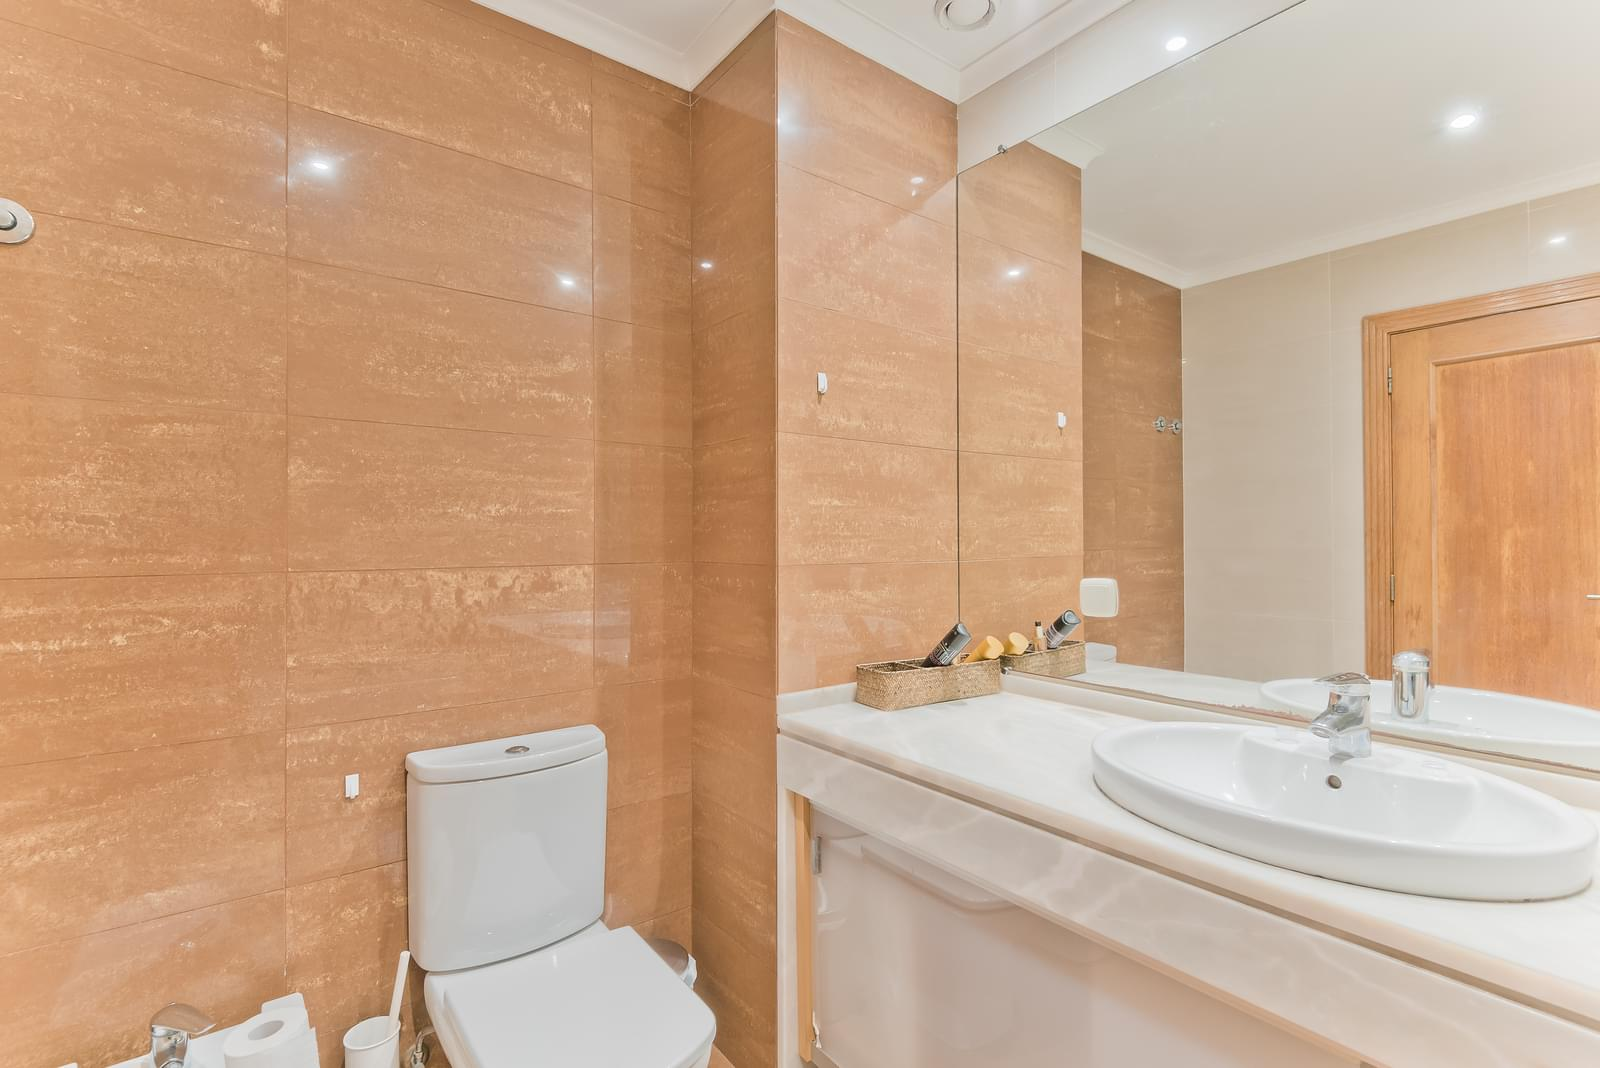 3 bedroom apartment with a swimming pool in gated community